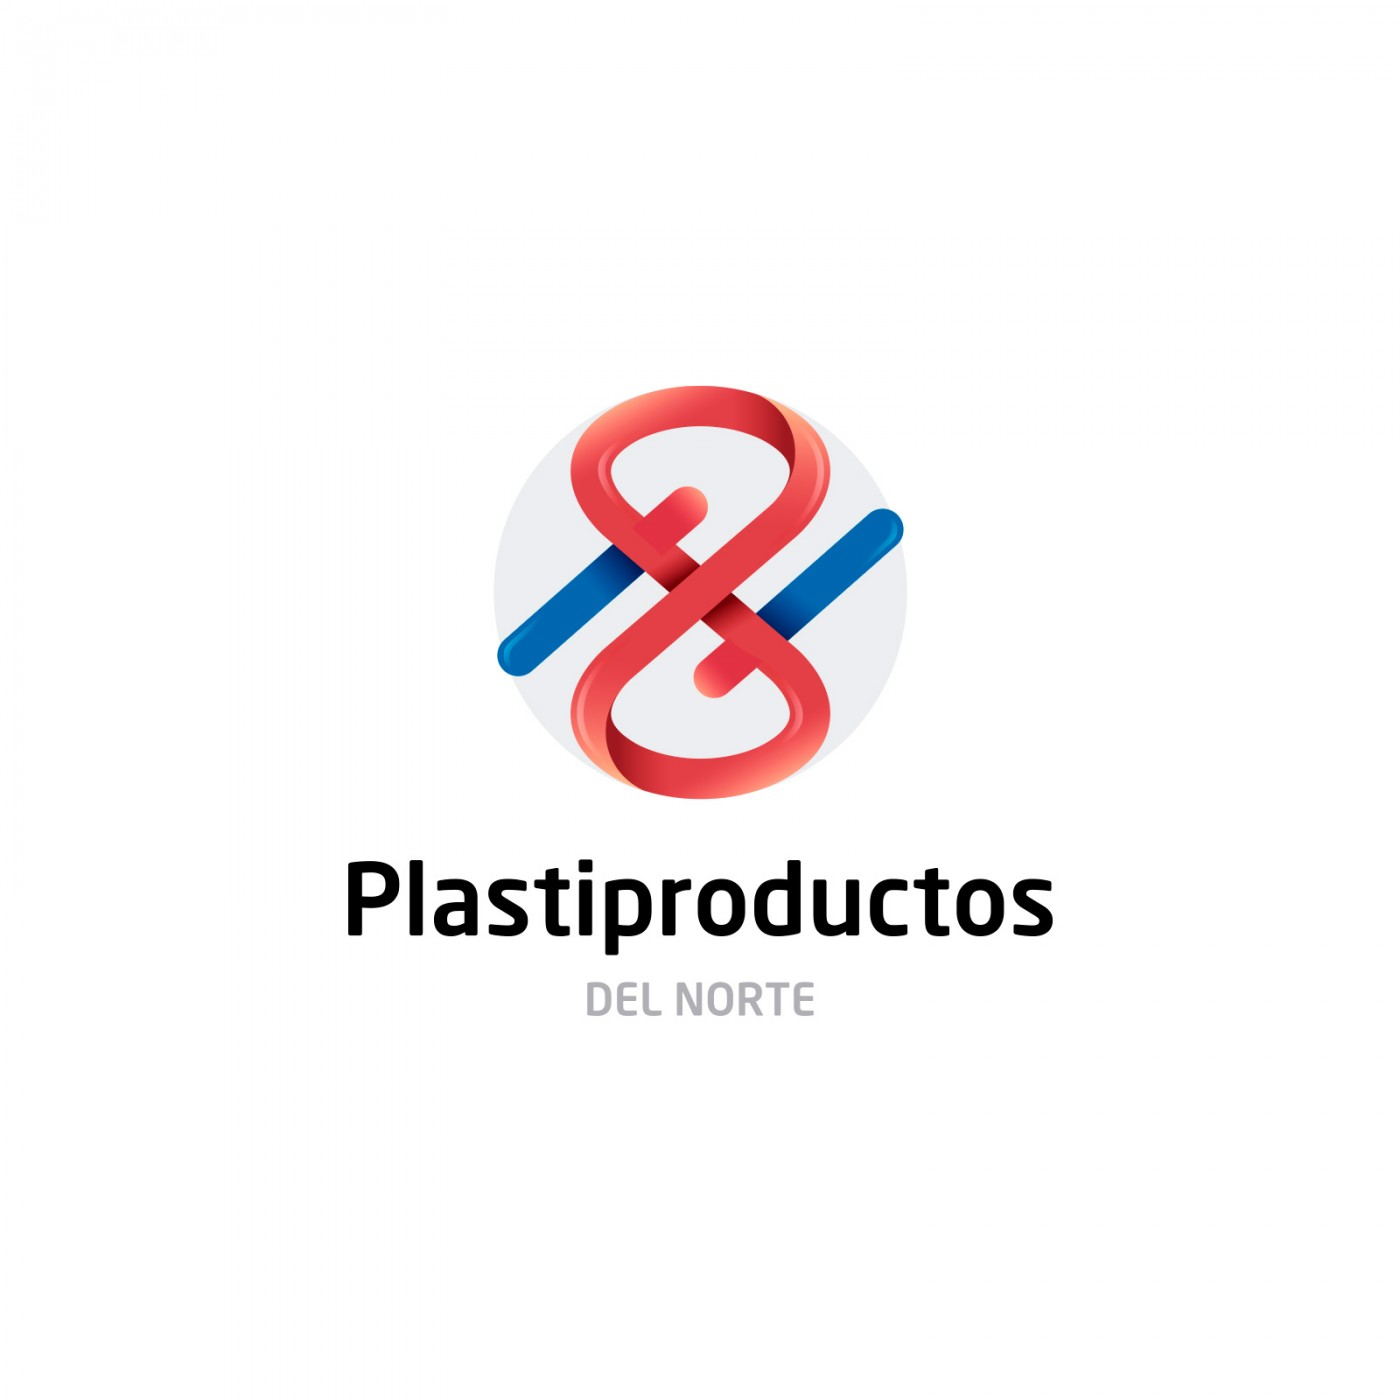 Plastiproductos